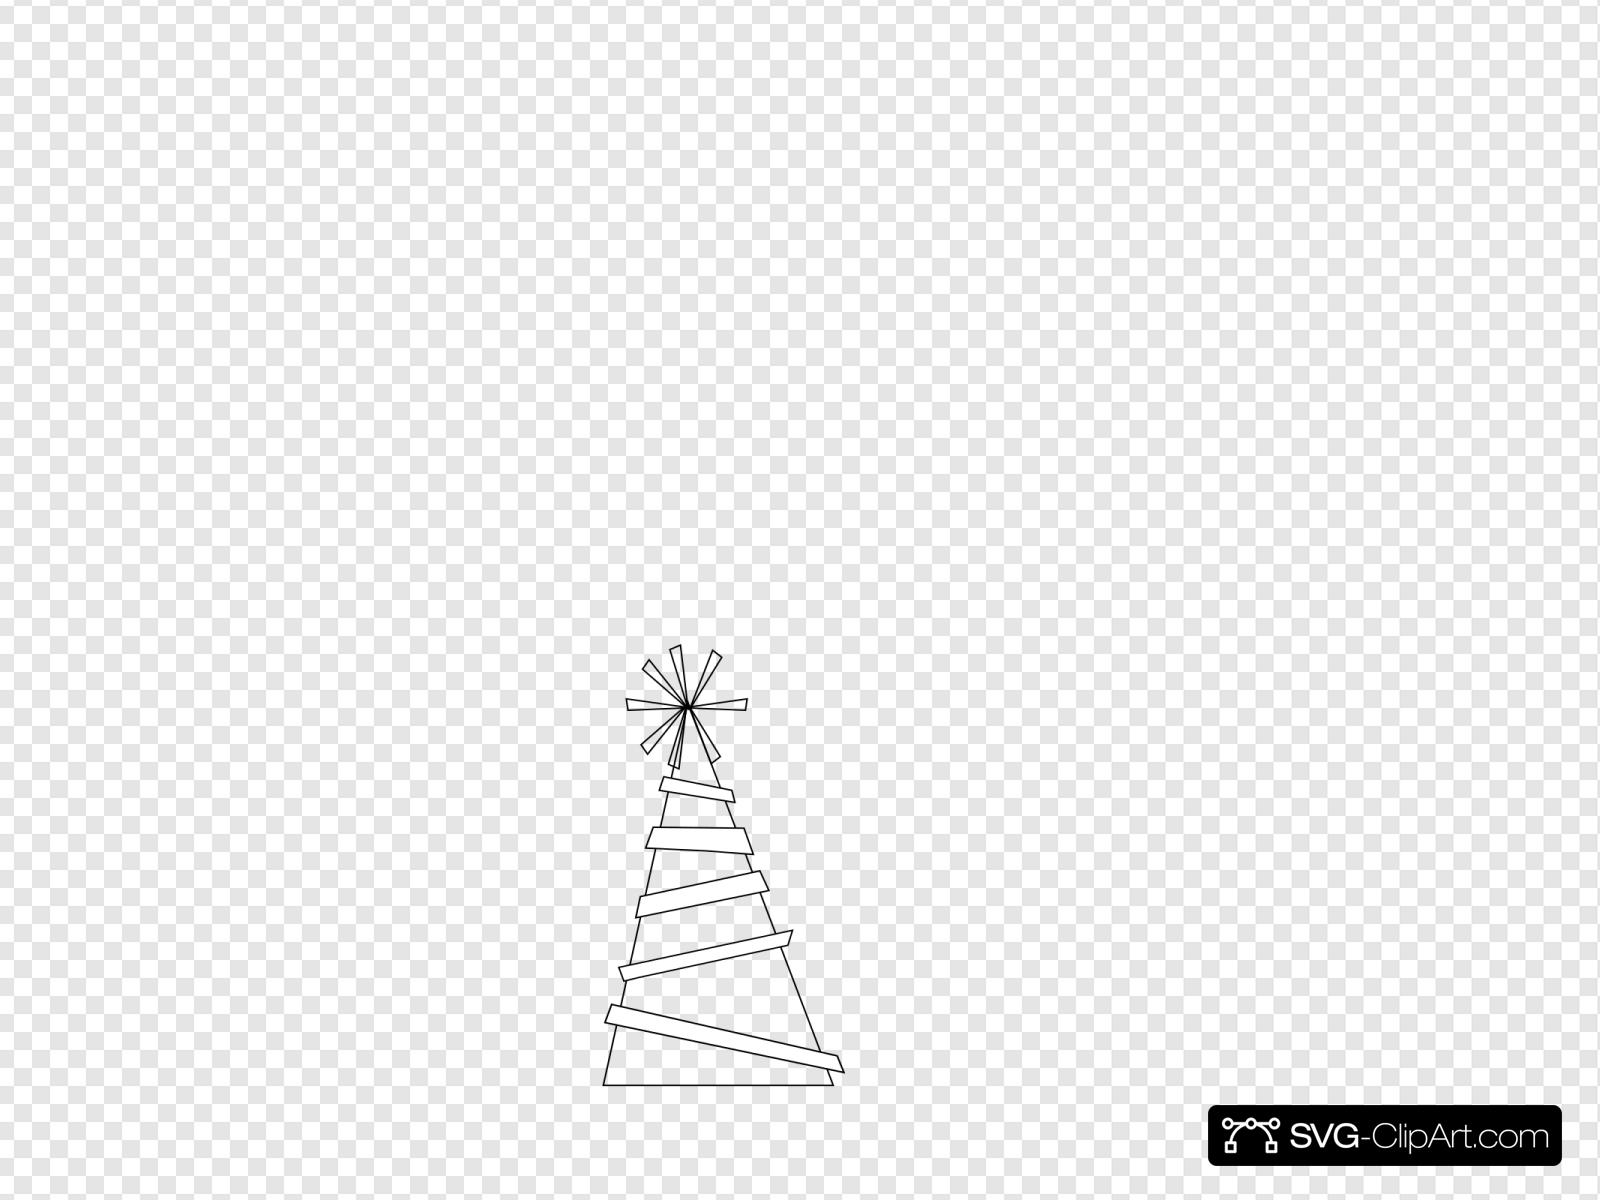 Party Hat Clipart Black And White Party Hat Outline Clip Art Icon And Svg Svg Clipart